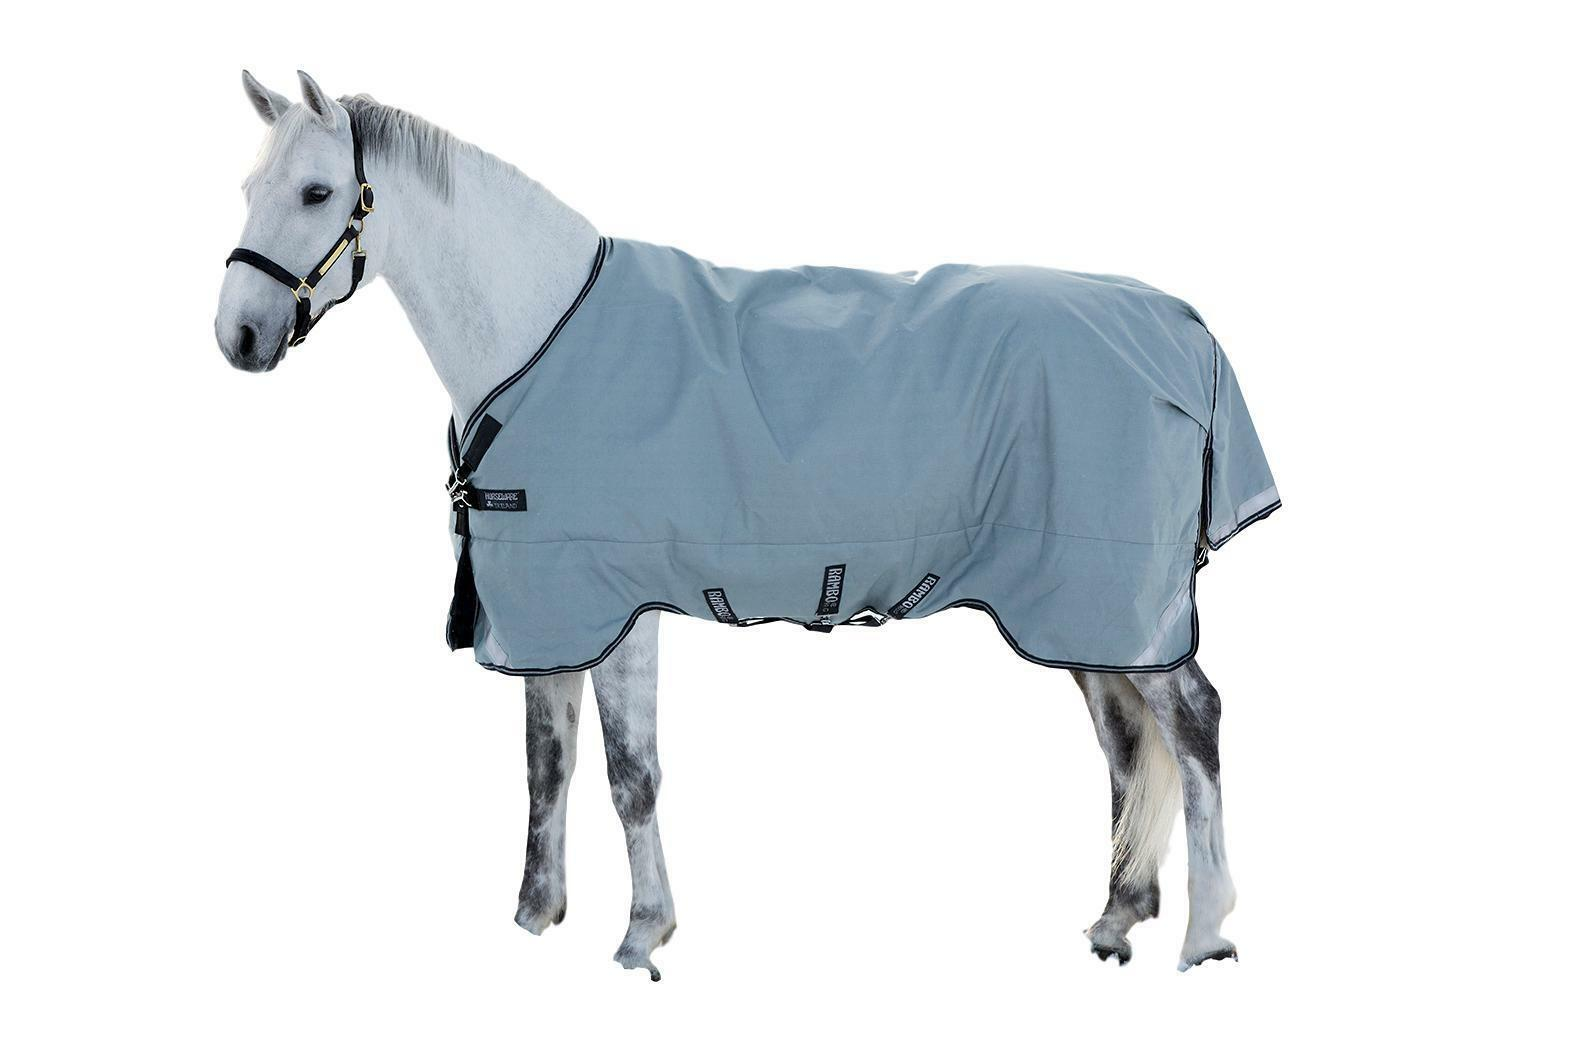 Horseware Rambo Original Turnout Blanket 100g with Leg Arches Waterproof